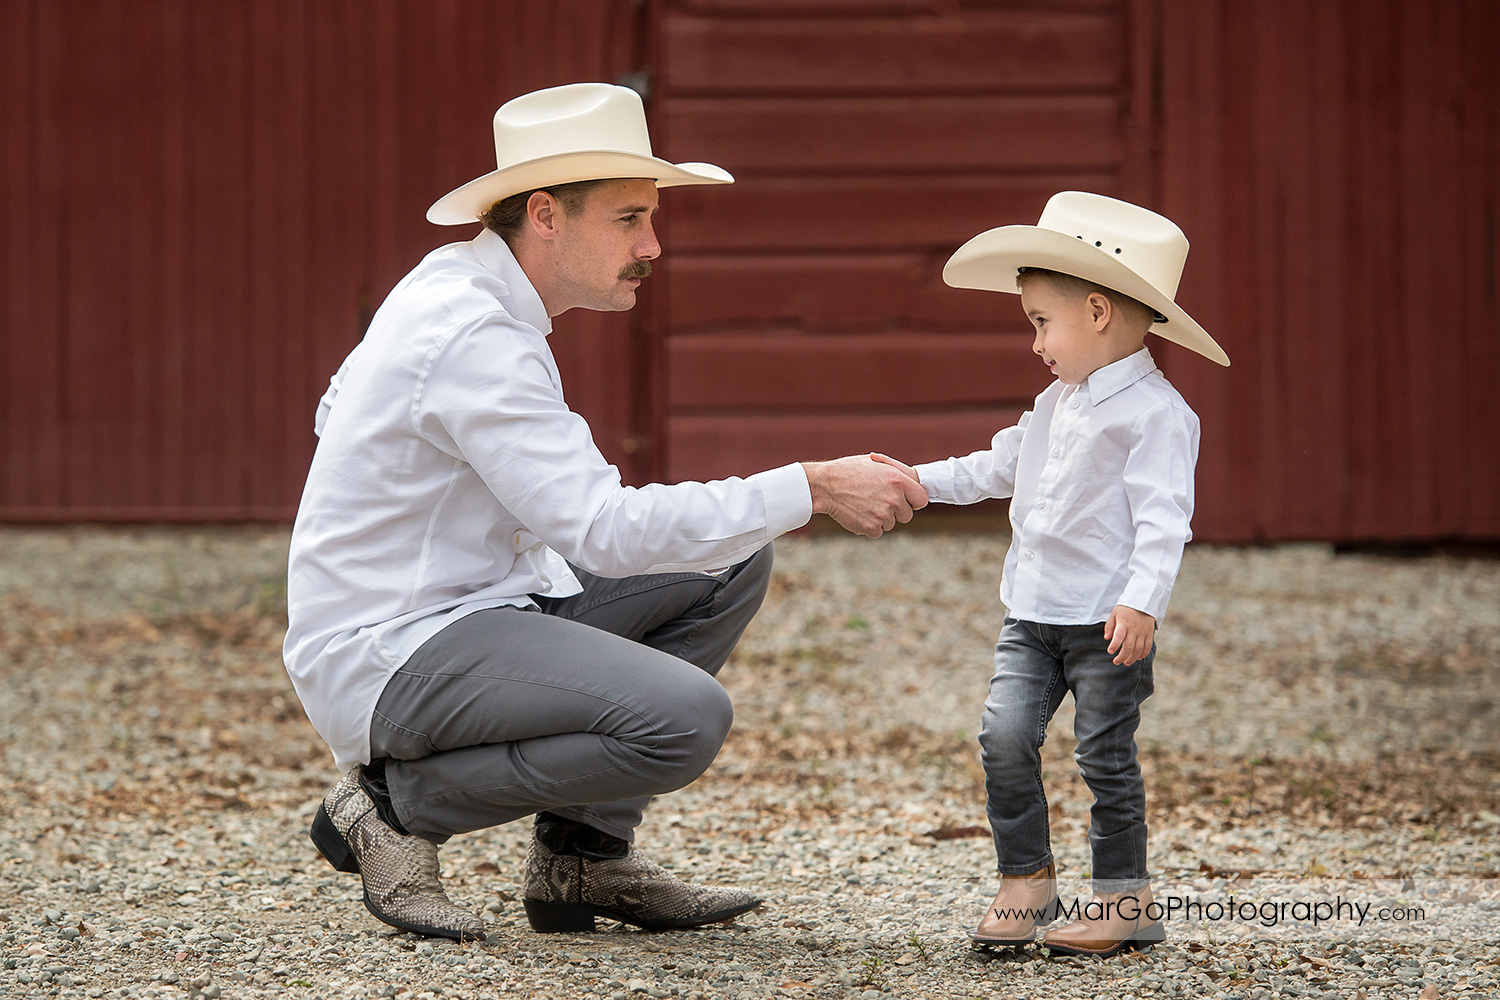 man and little boy in white shirts, gray jeans and cowboy hats shaking hands in front of red barn in Shinn Historical Park and Arboretum in Fremont